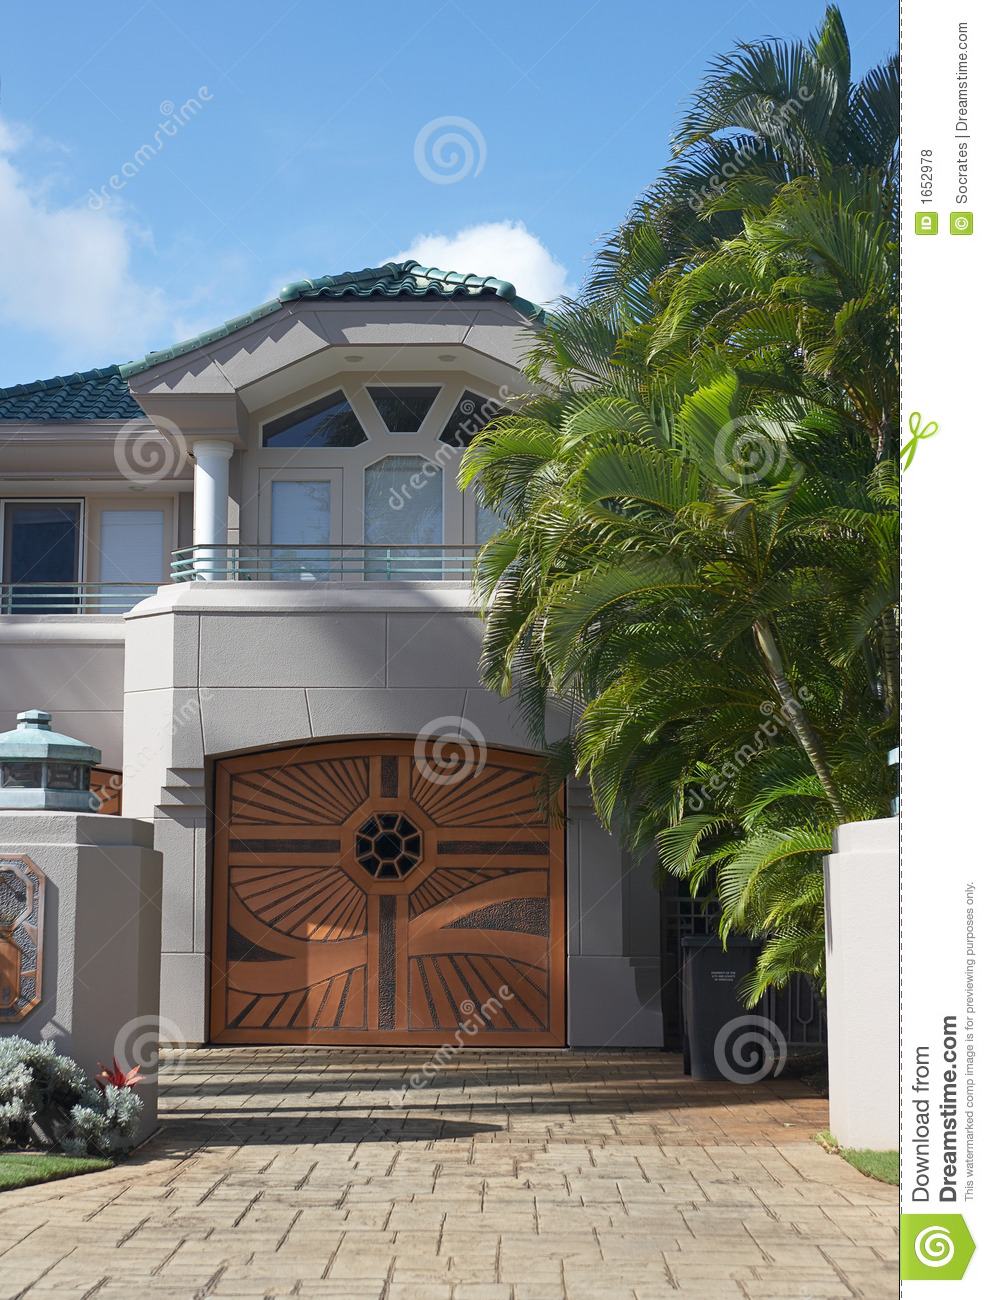 Luxury house royalty free stock photos image 1652978 for Free luxury home images